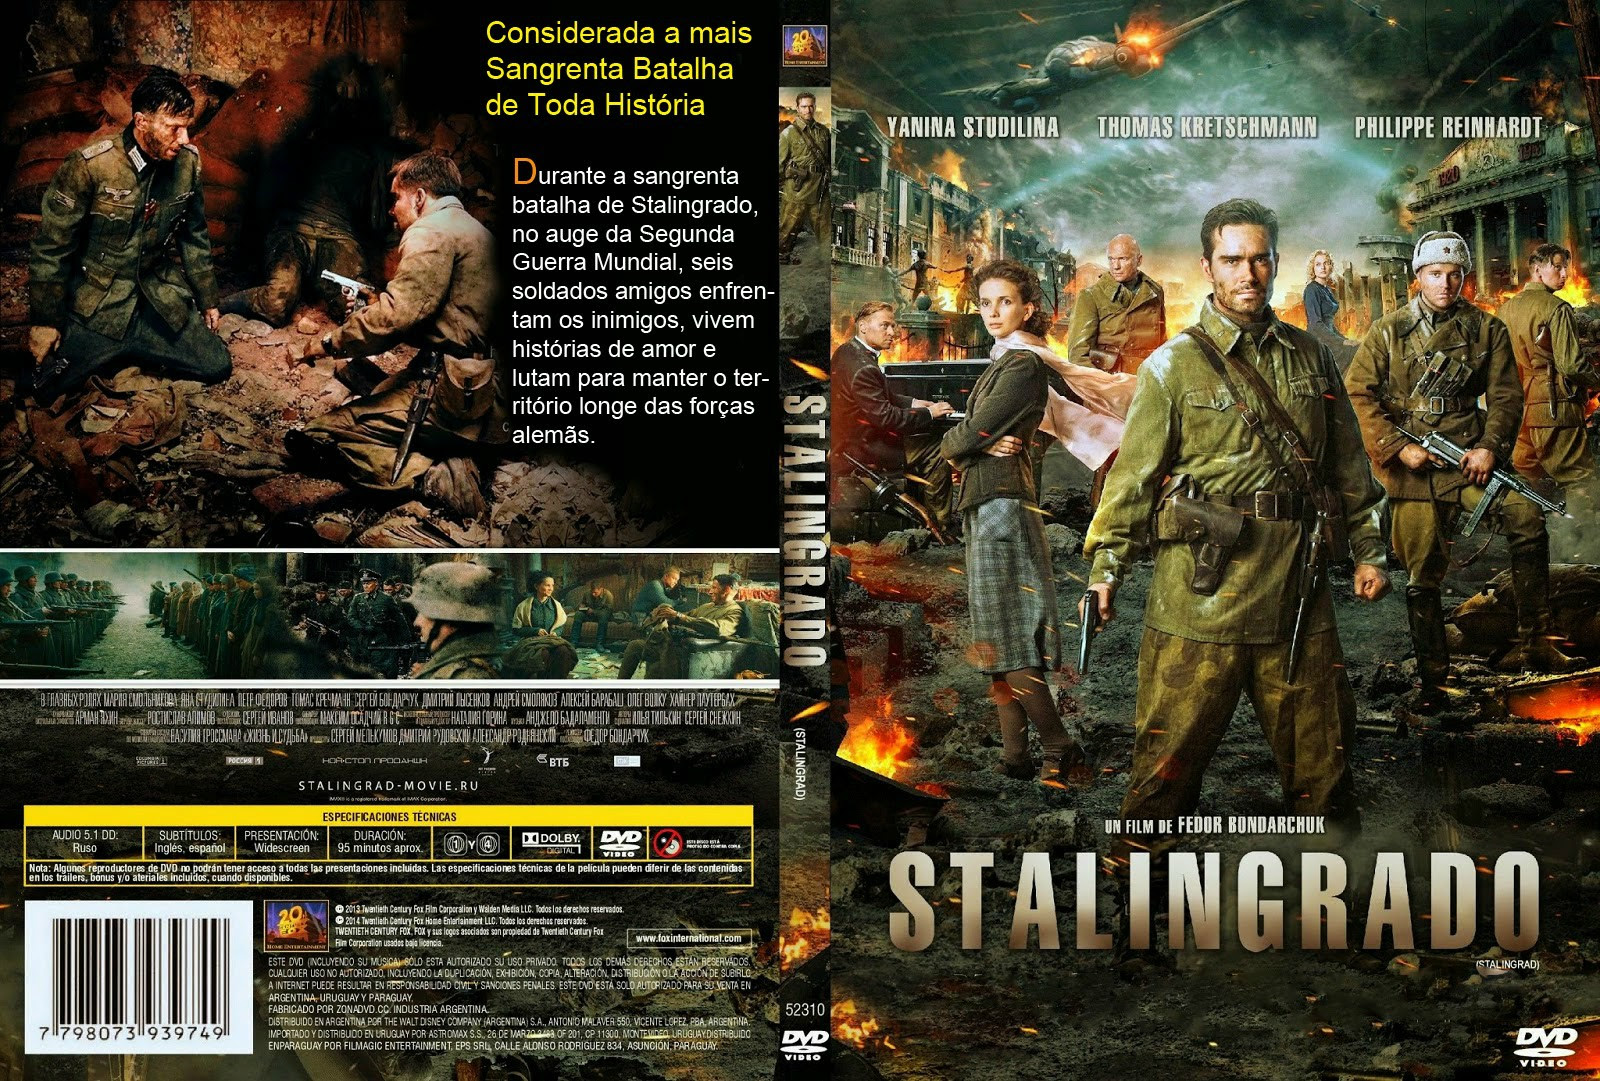 VEeKSix Stalingrado   A Batalha Final Torrent   BluRay Rip 1080p Dual Áudio 5.1 (2014)